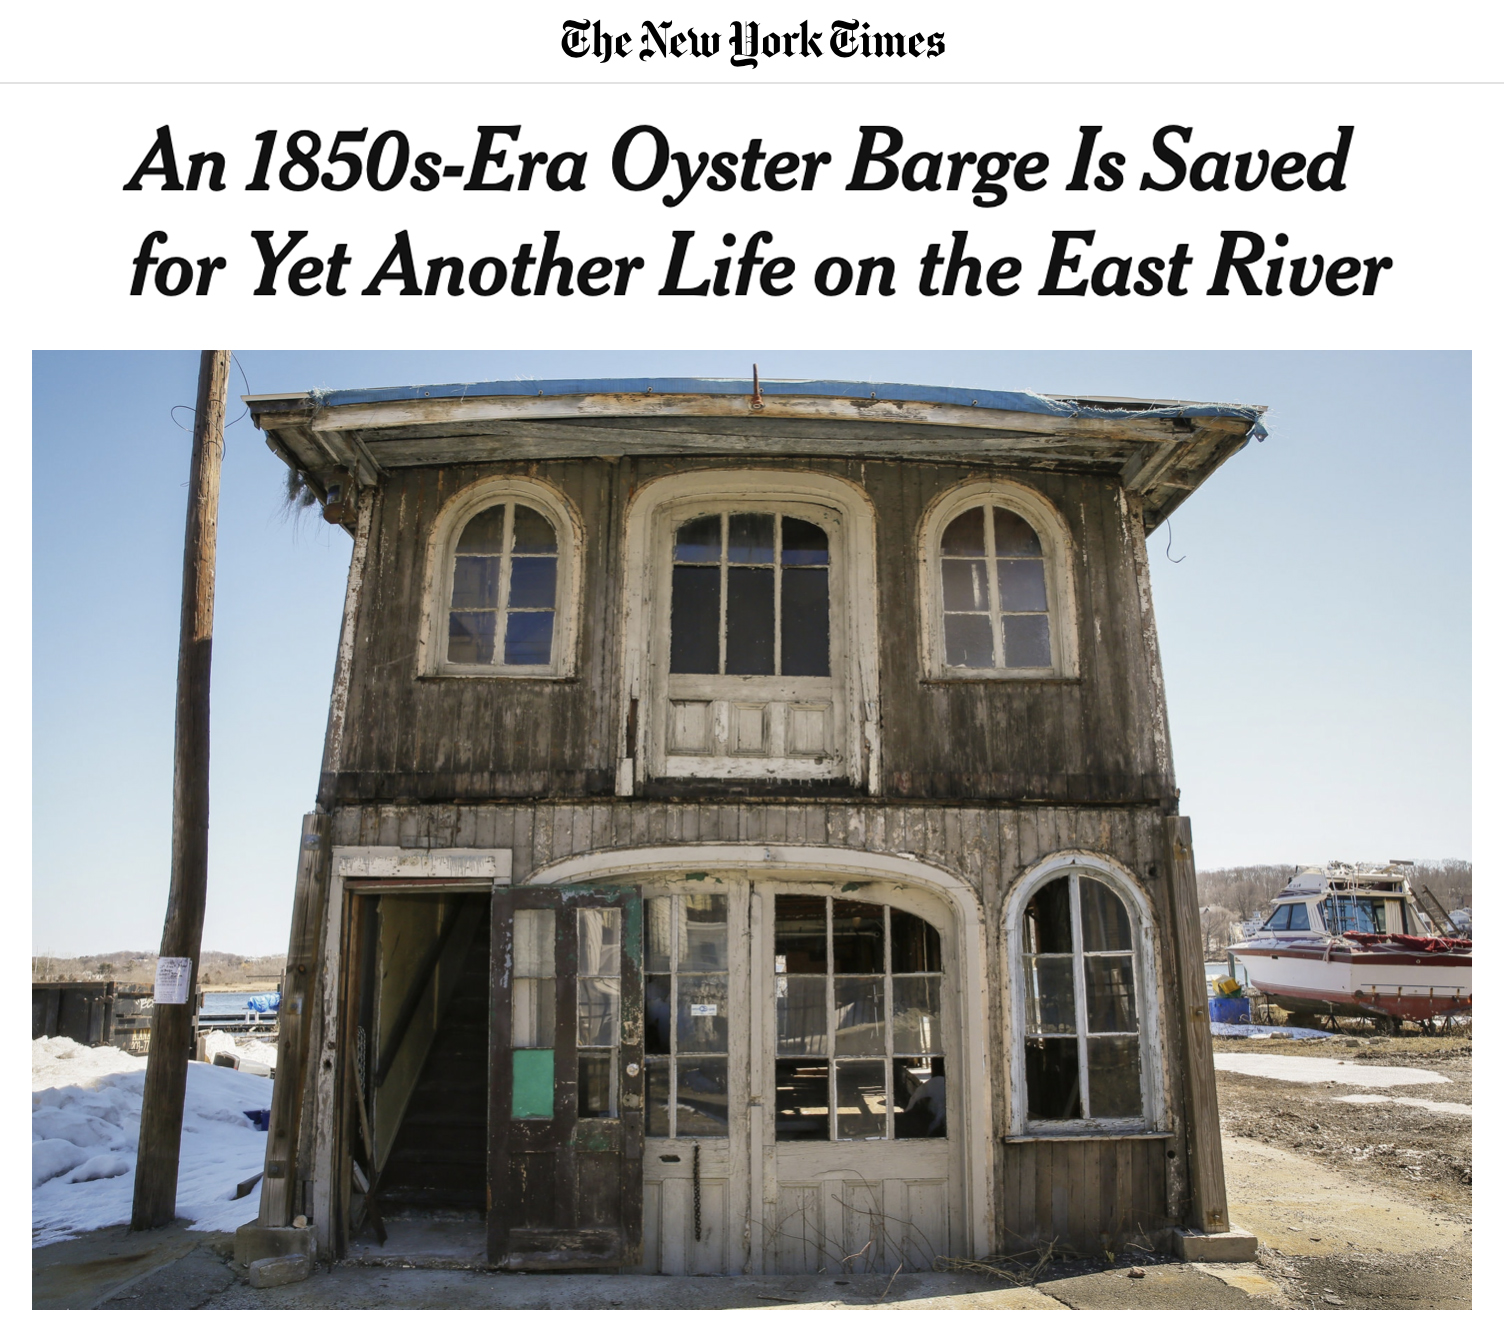 "An 1850s-Era Oyster Barge is Saved    ""The barges were like processing plants,"" Mr. Greenberg said. ""The oysters came in one end and went out the other very quickly.""  The barges sprung up when New York City was still the oyster capital of the world and lower New York Harbor had about 350 square miles of oyster beds, where hundreds of millions of bivalves were harvested every year.  Around 1920, as the oyster industry in New York began to decline, Mr. Greenberg said, the barge was bought by Ernest Ball, who owned the Fair Haven marina property at the time. It was towed to Fair Haven, which still had a thriving oyster industry along the Quinnipiac River.  Read the New York Times Article   An 1850s-Era Oyster Barge Is Saved for Yet Another Life on the East River"